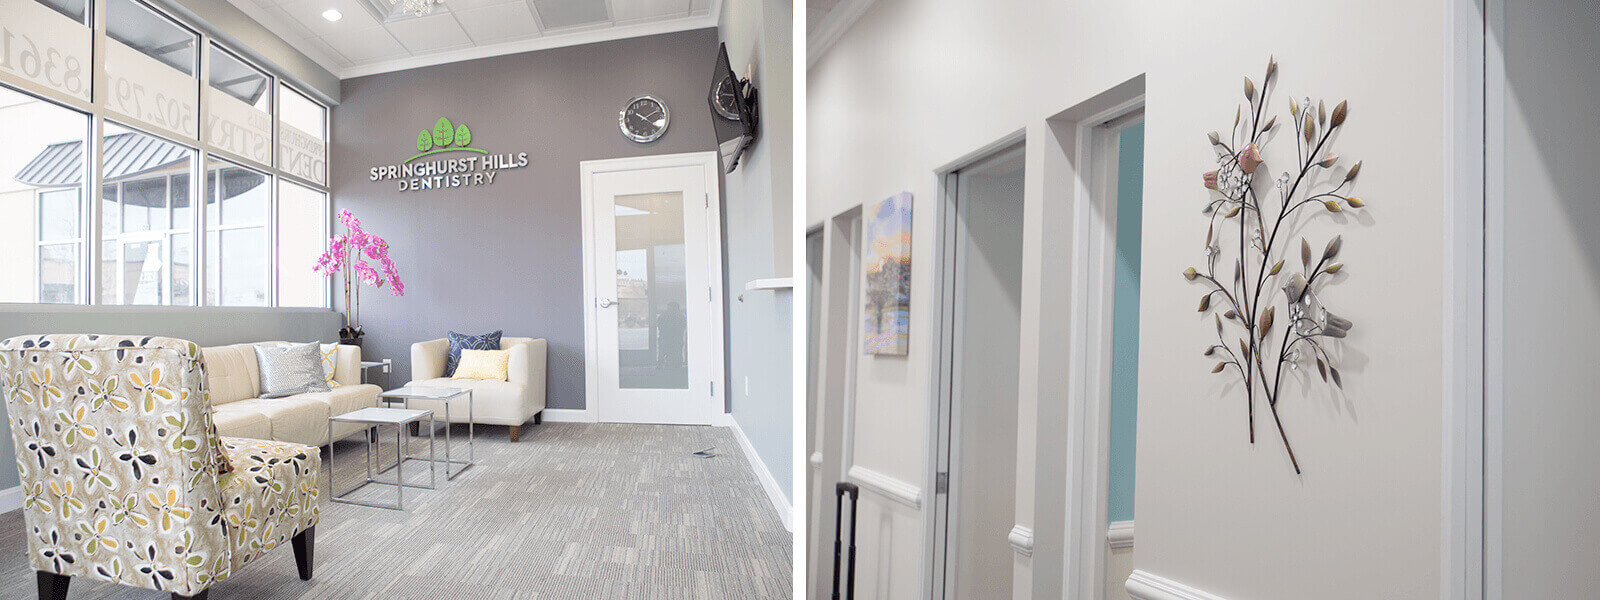 Our dental office in Louisville, KY